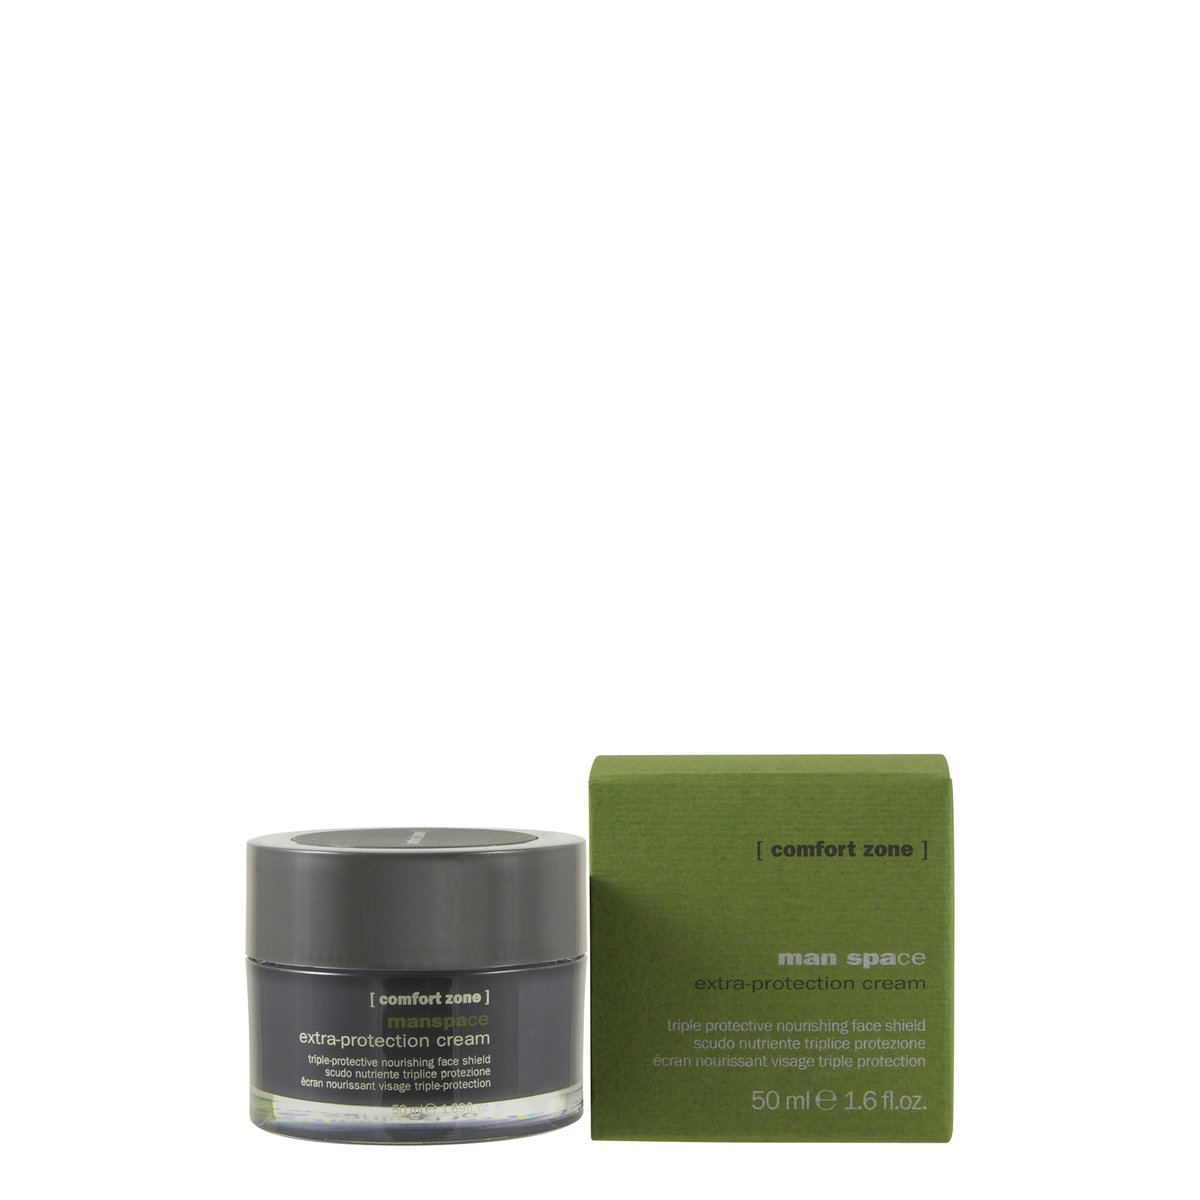 MAN SPACE EXTRA PROTECTION CREAM - Feuchtigkeitsspendende Creme